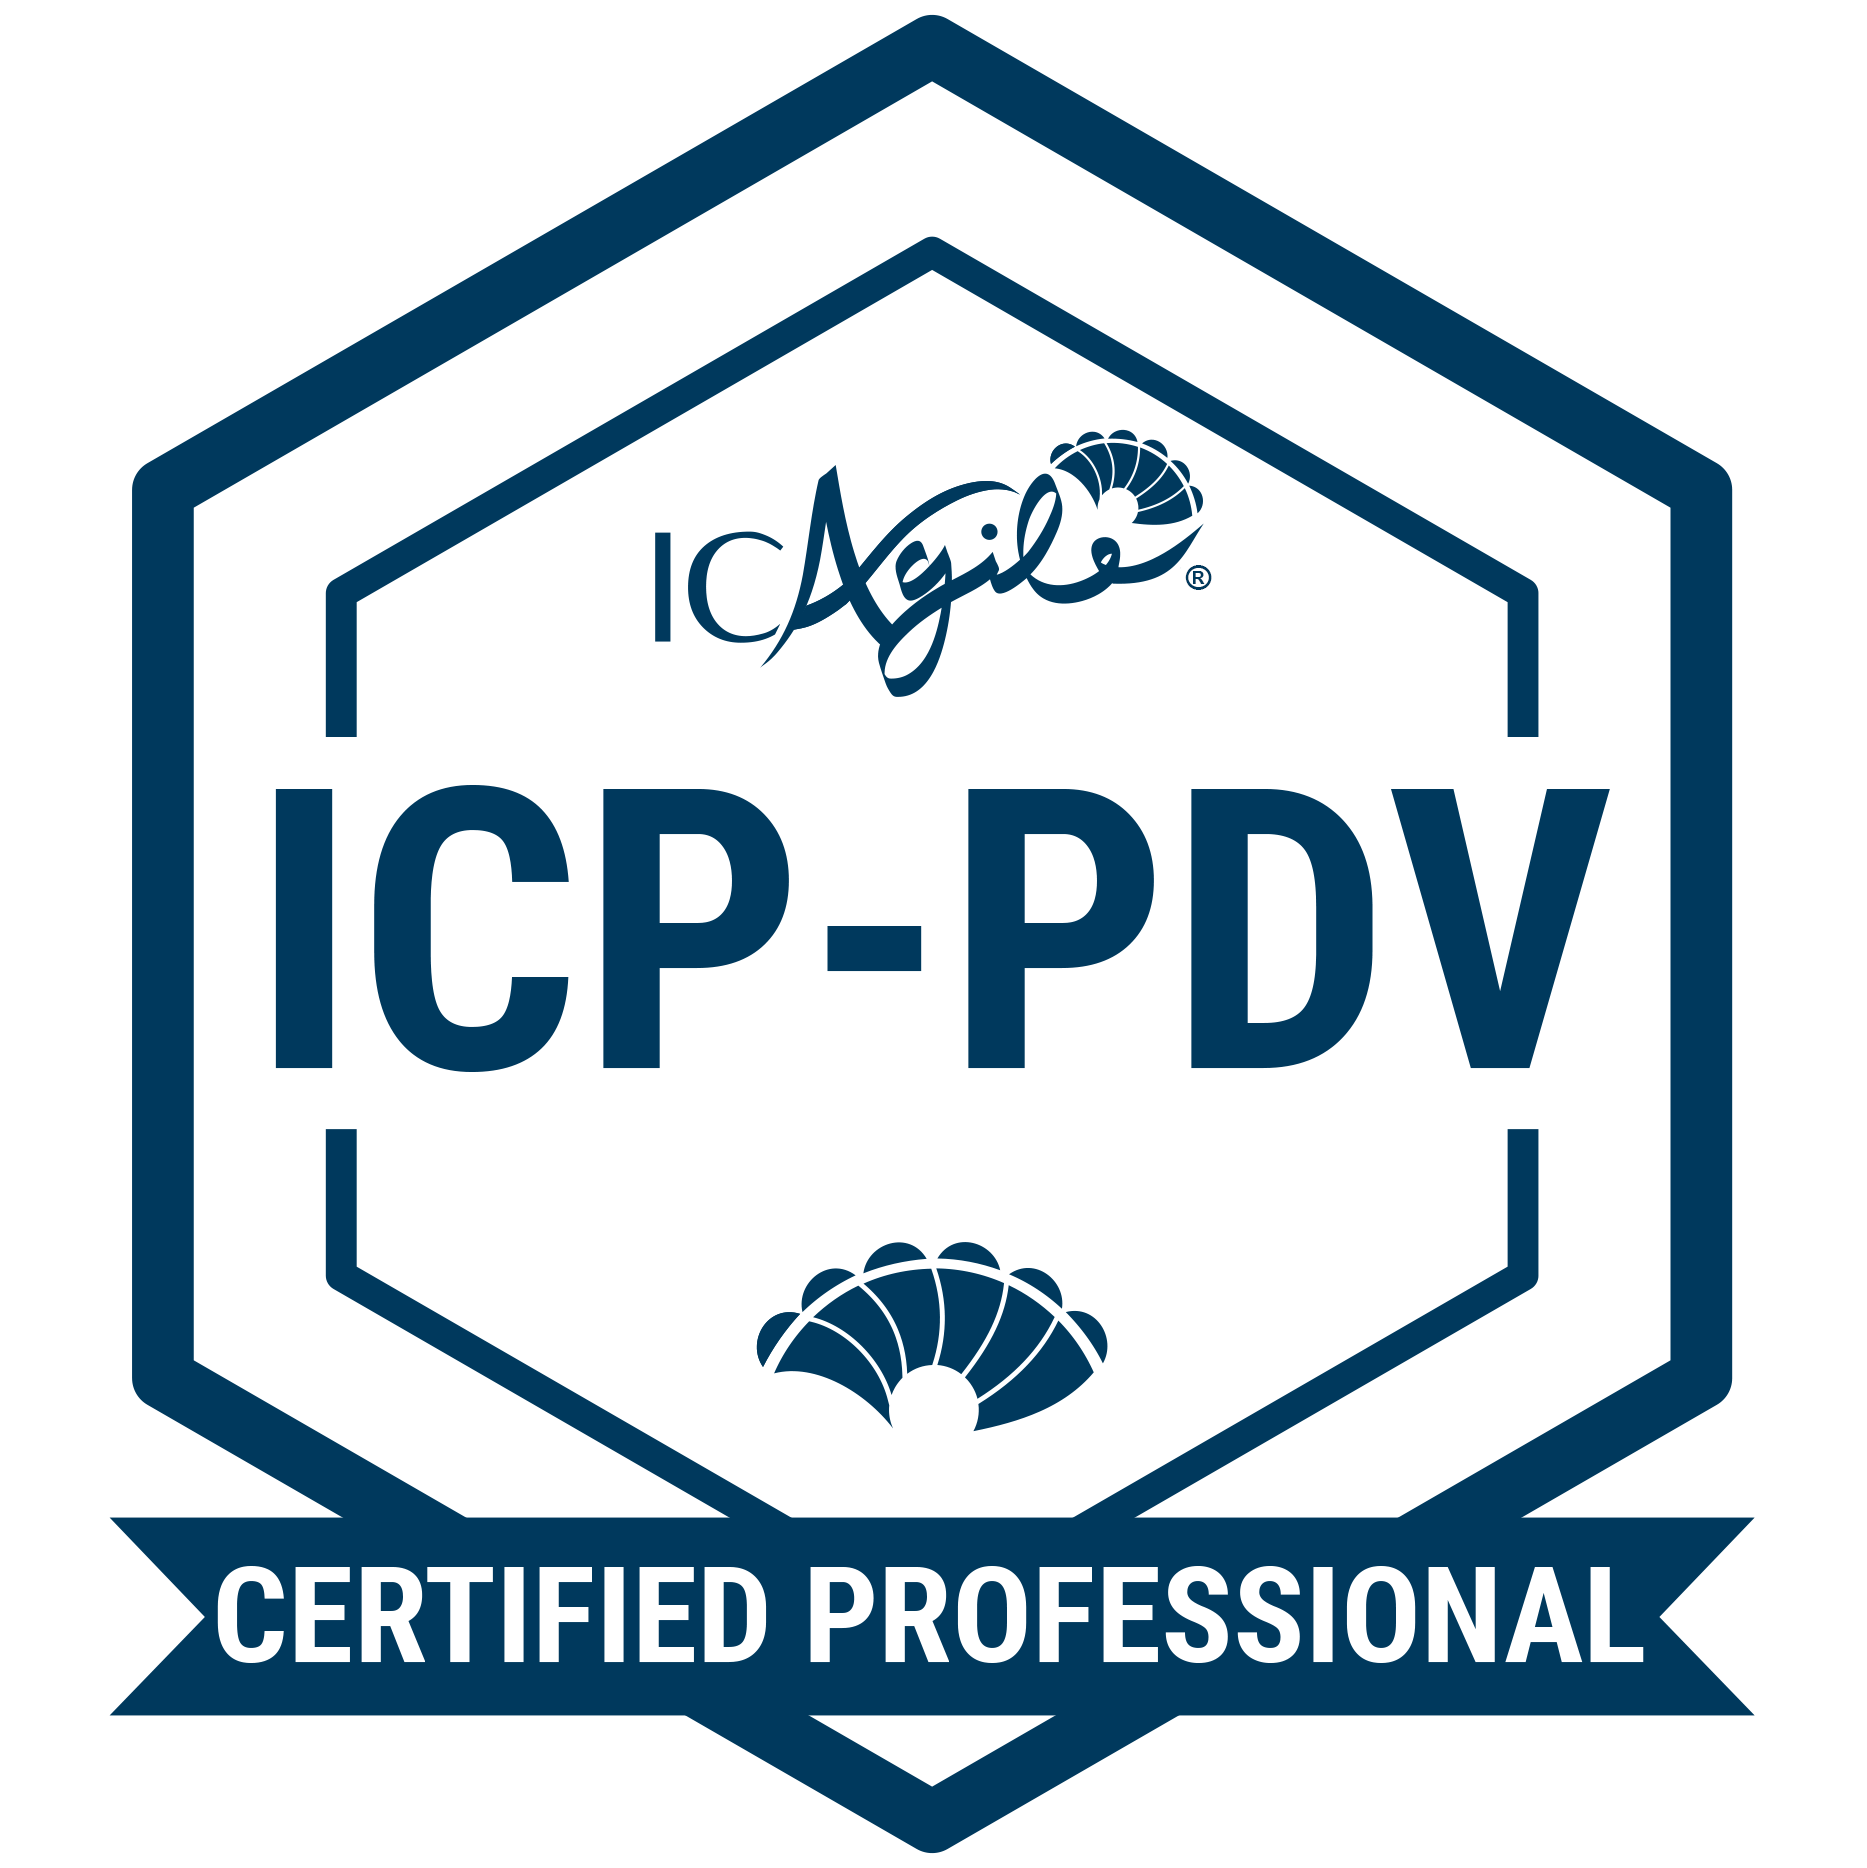 ICP-PDV badge